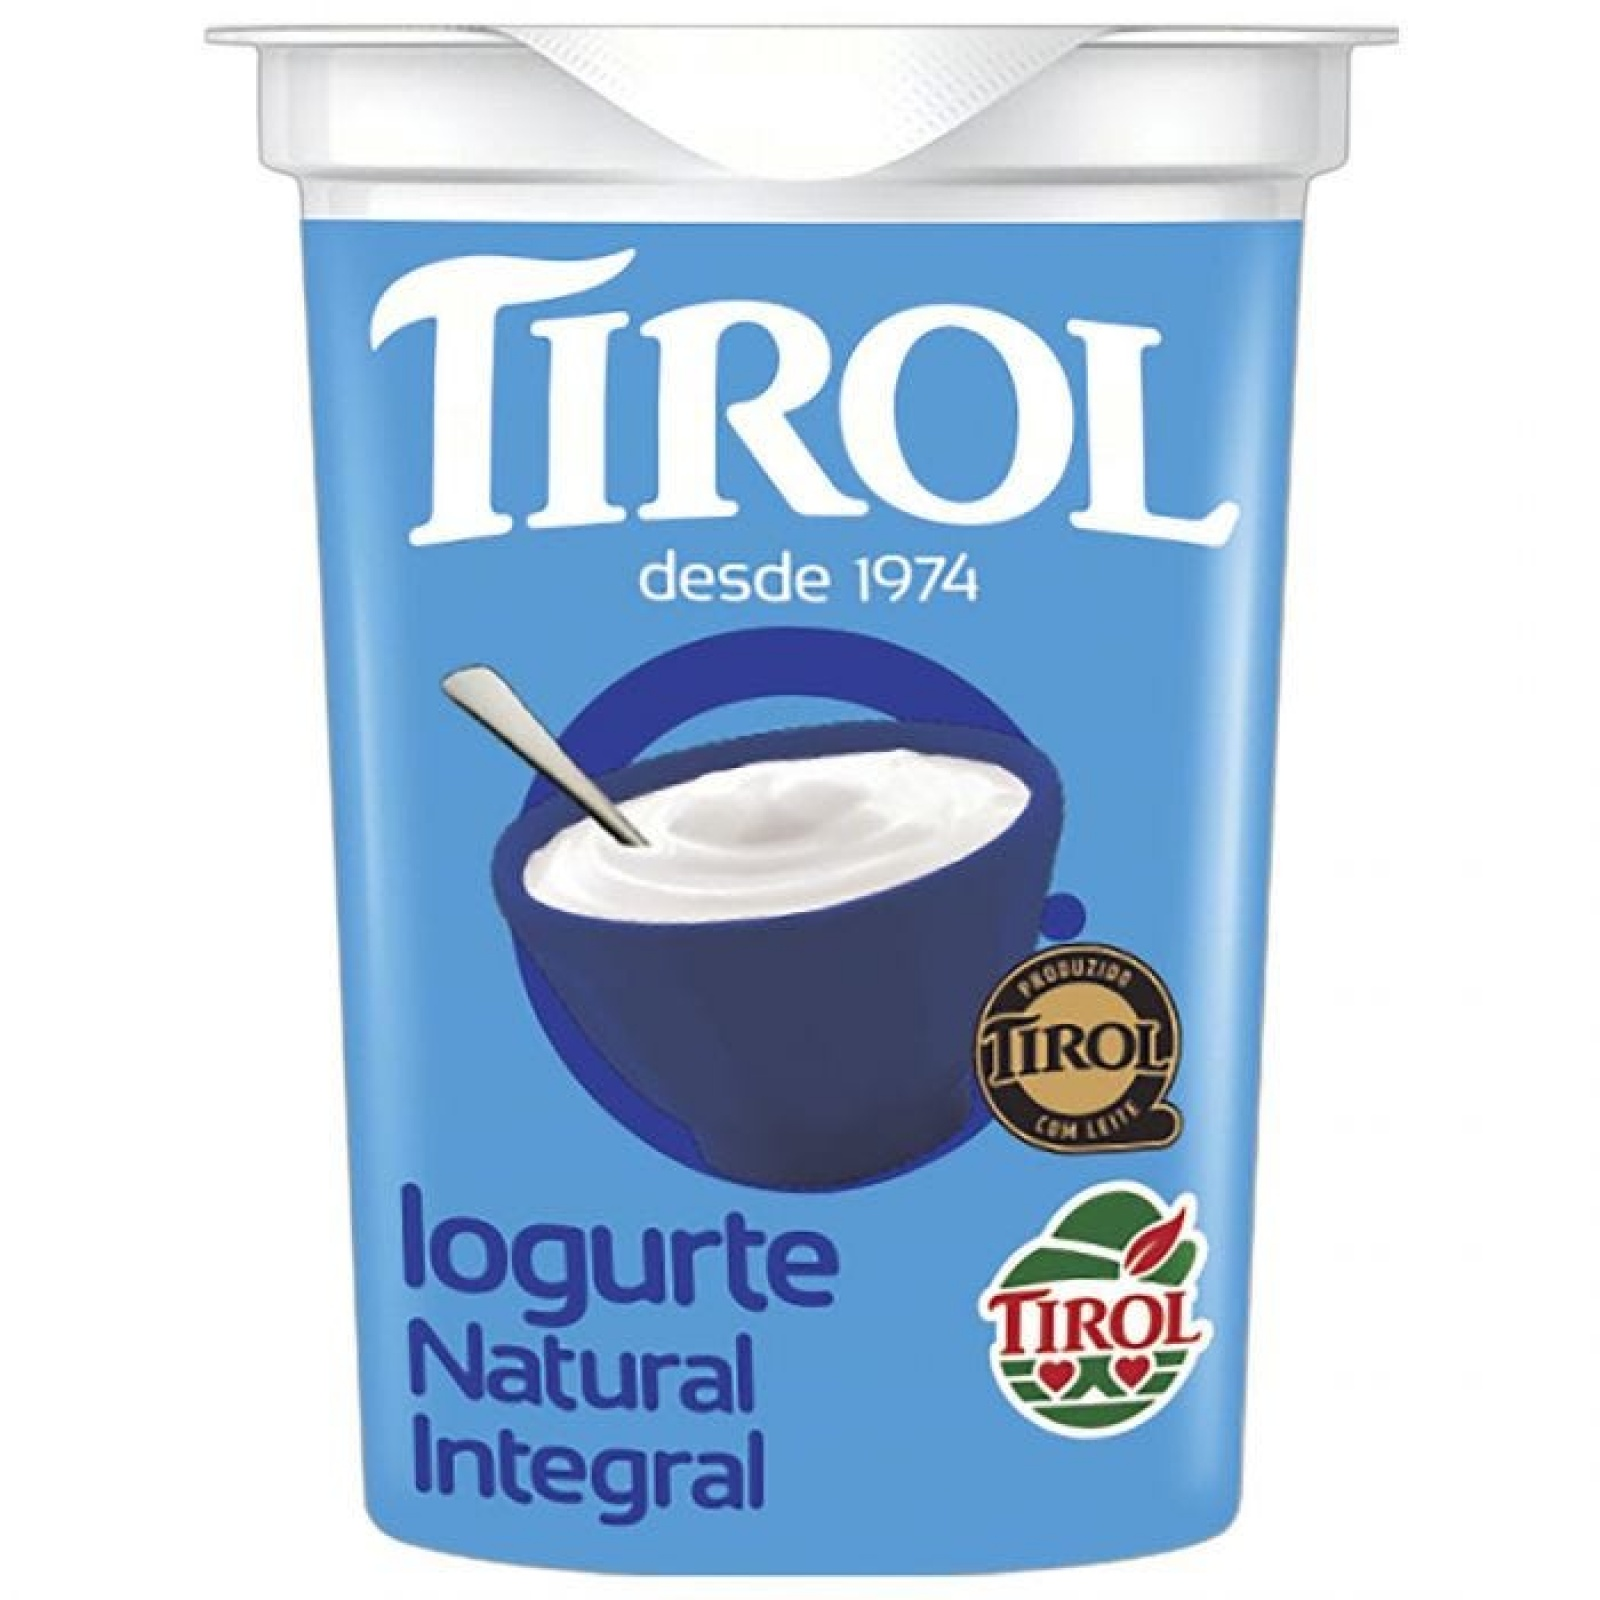 Iogurte Natural Integral 160g